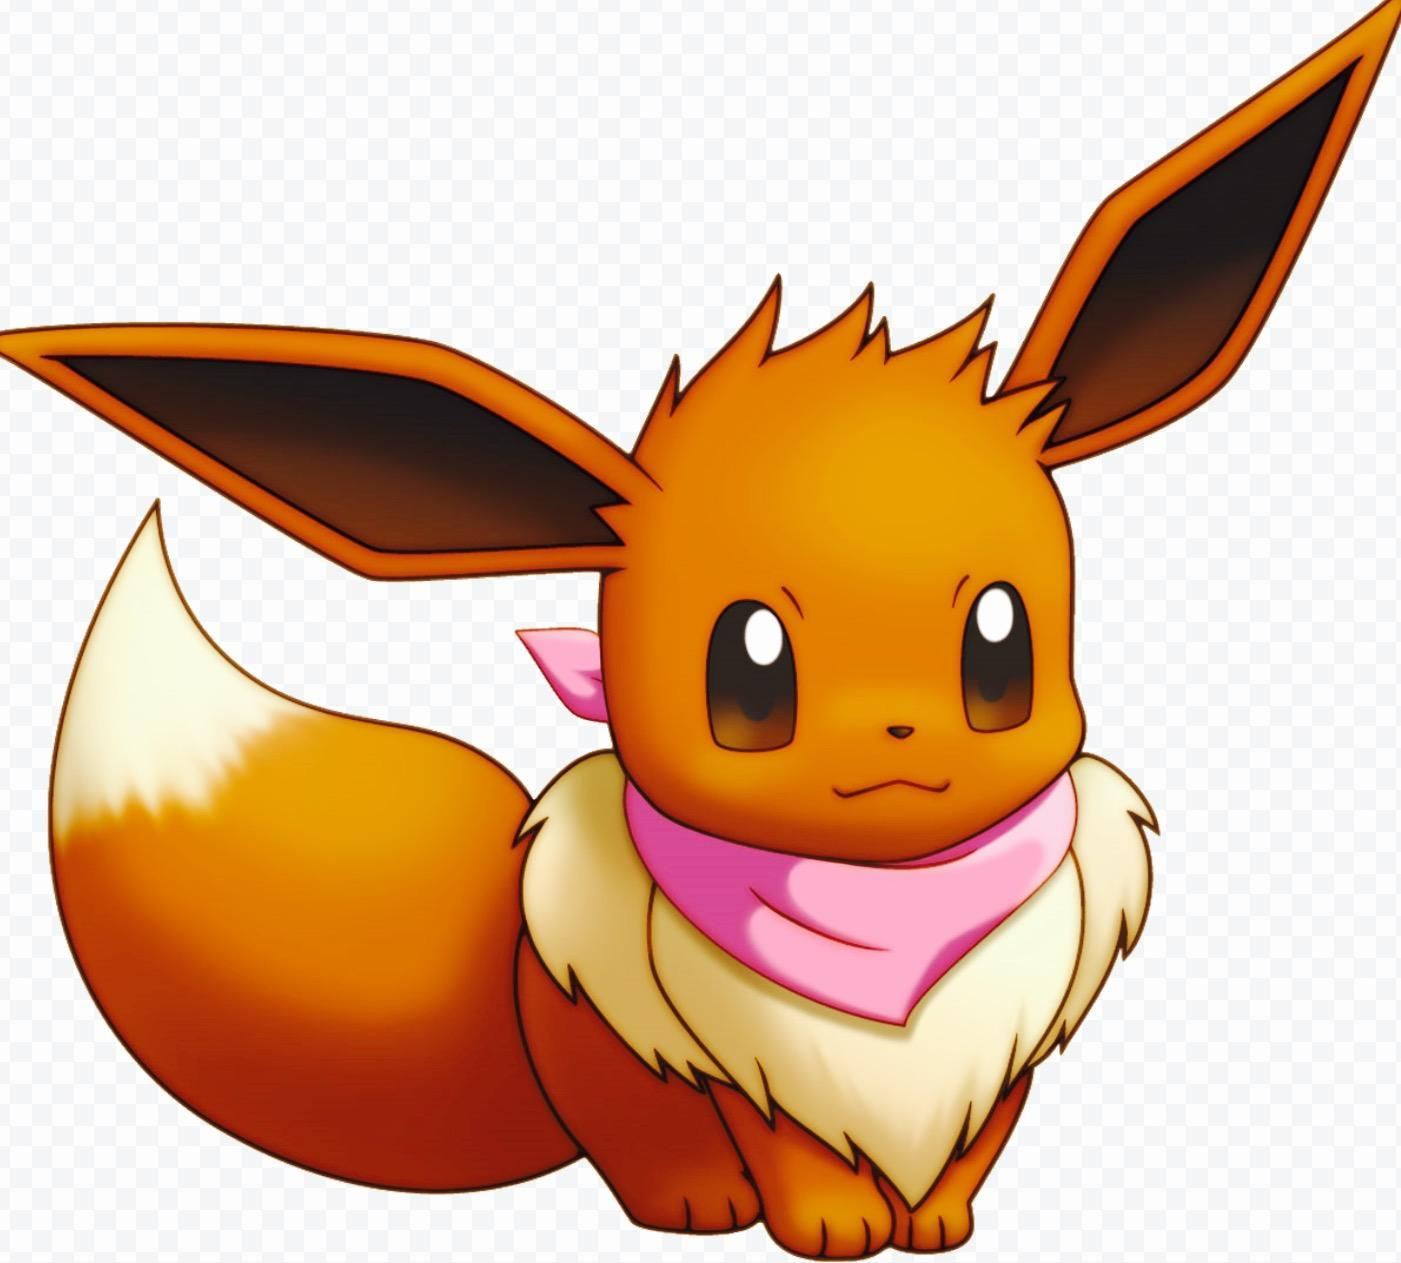 Sweet and kind eevee